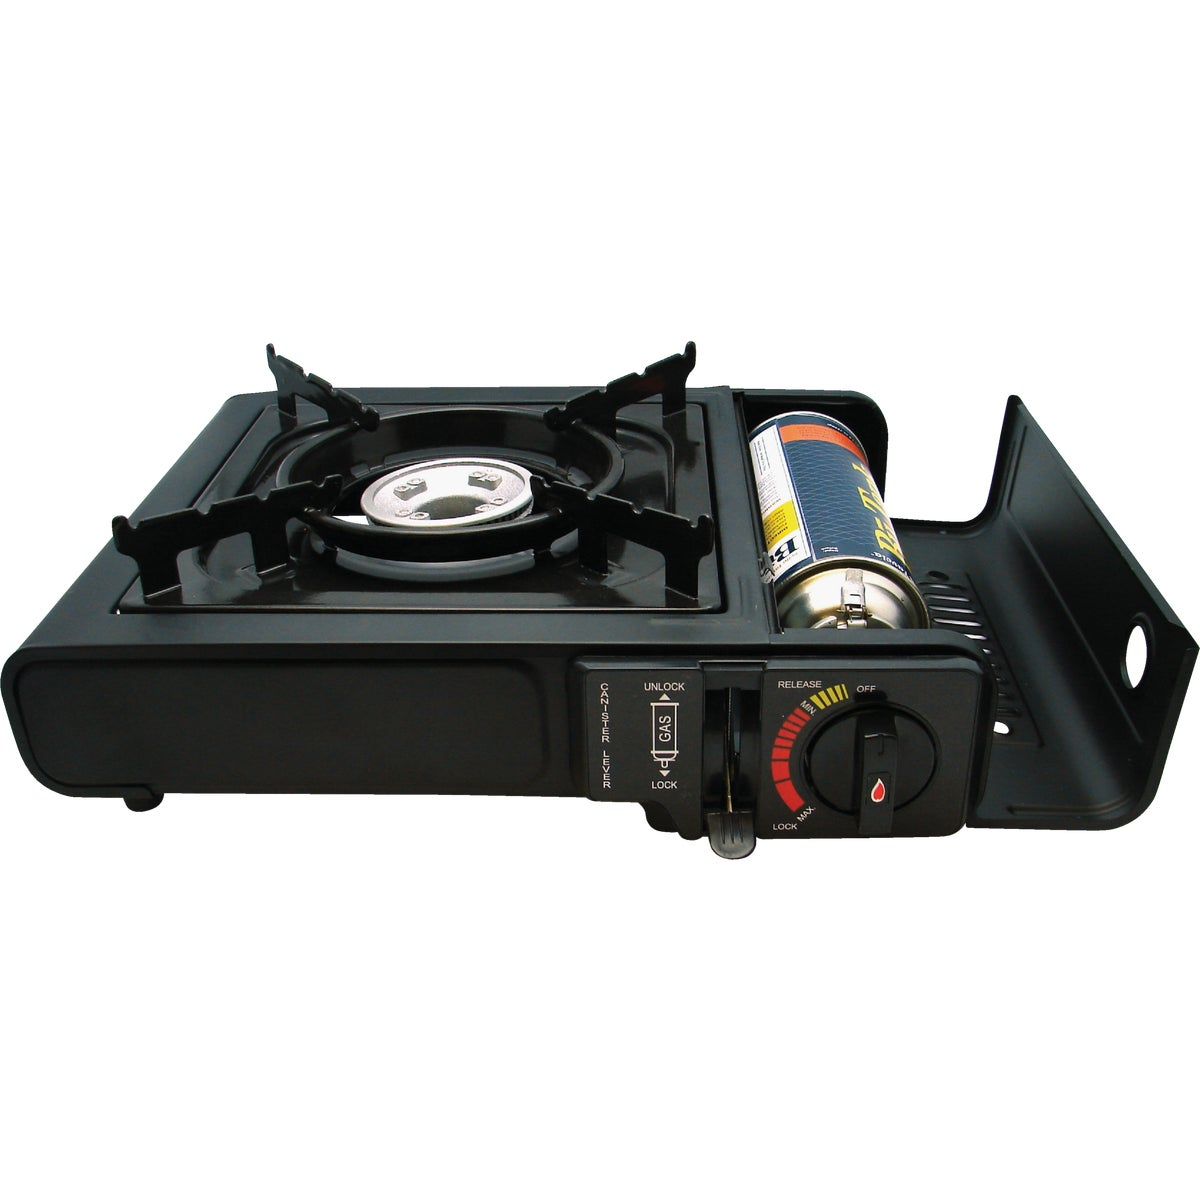 10K BTU BUTANE MINISTOVE - 8254 by Aervoe Industries